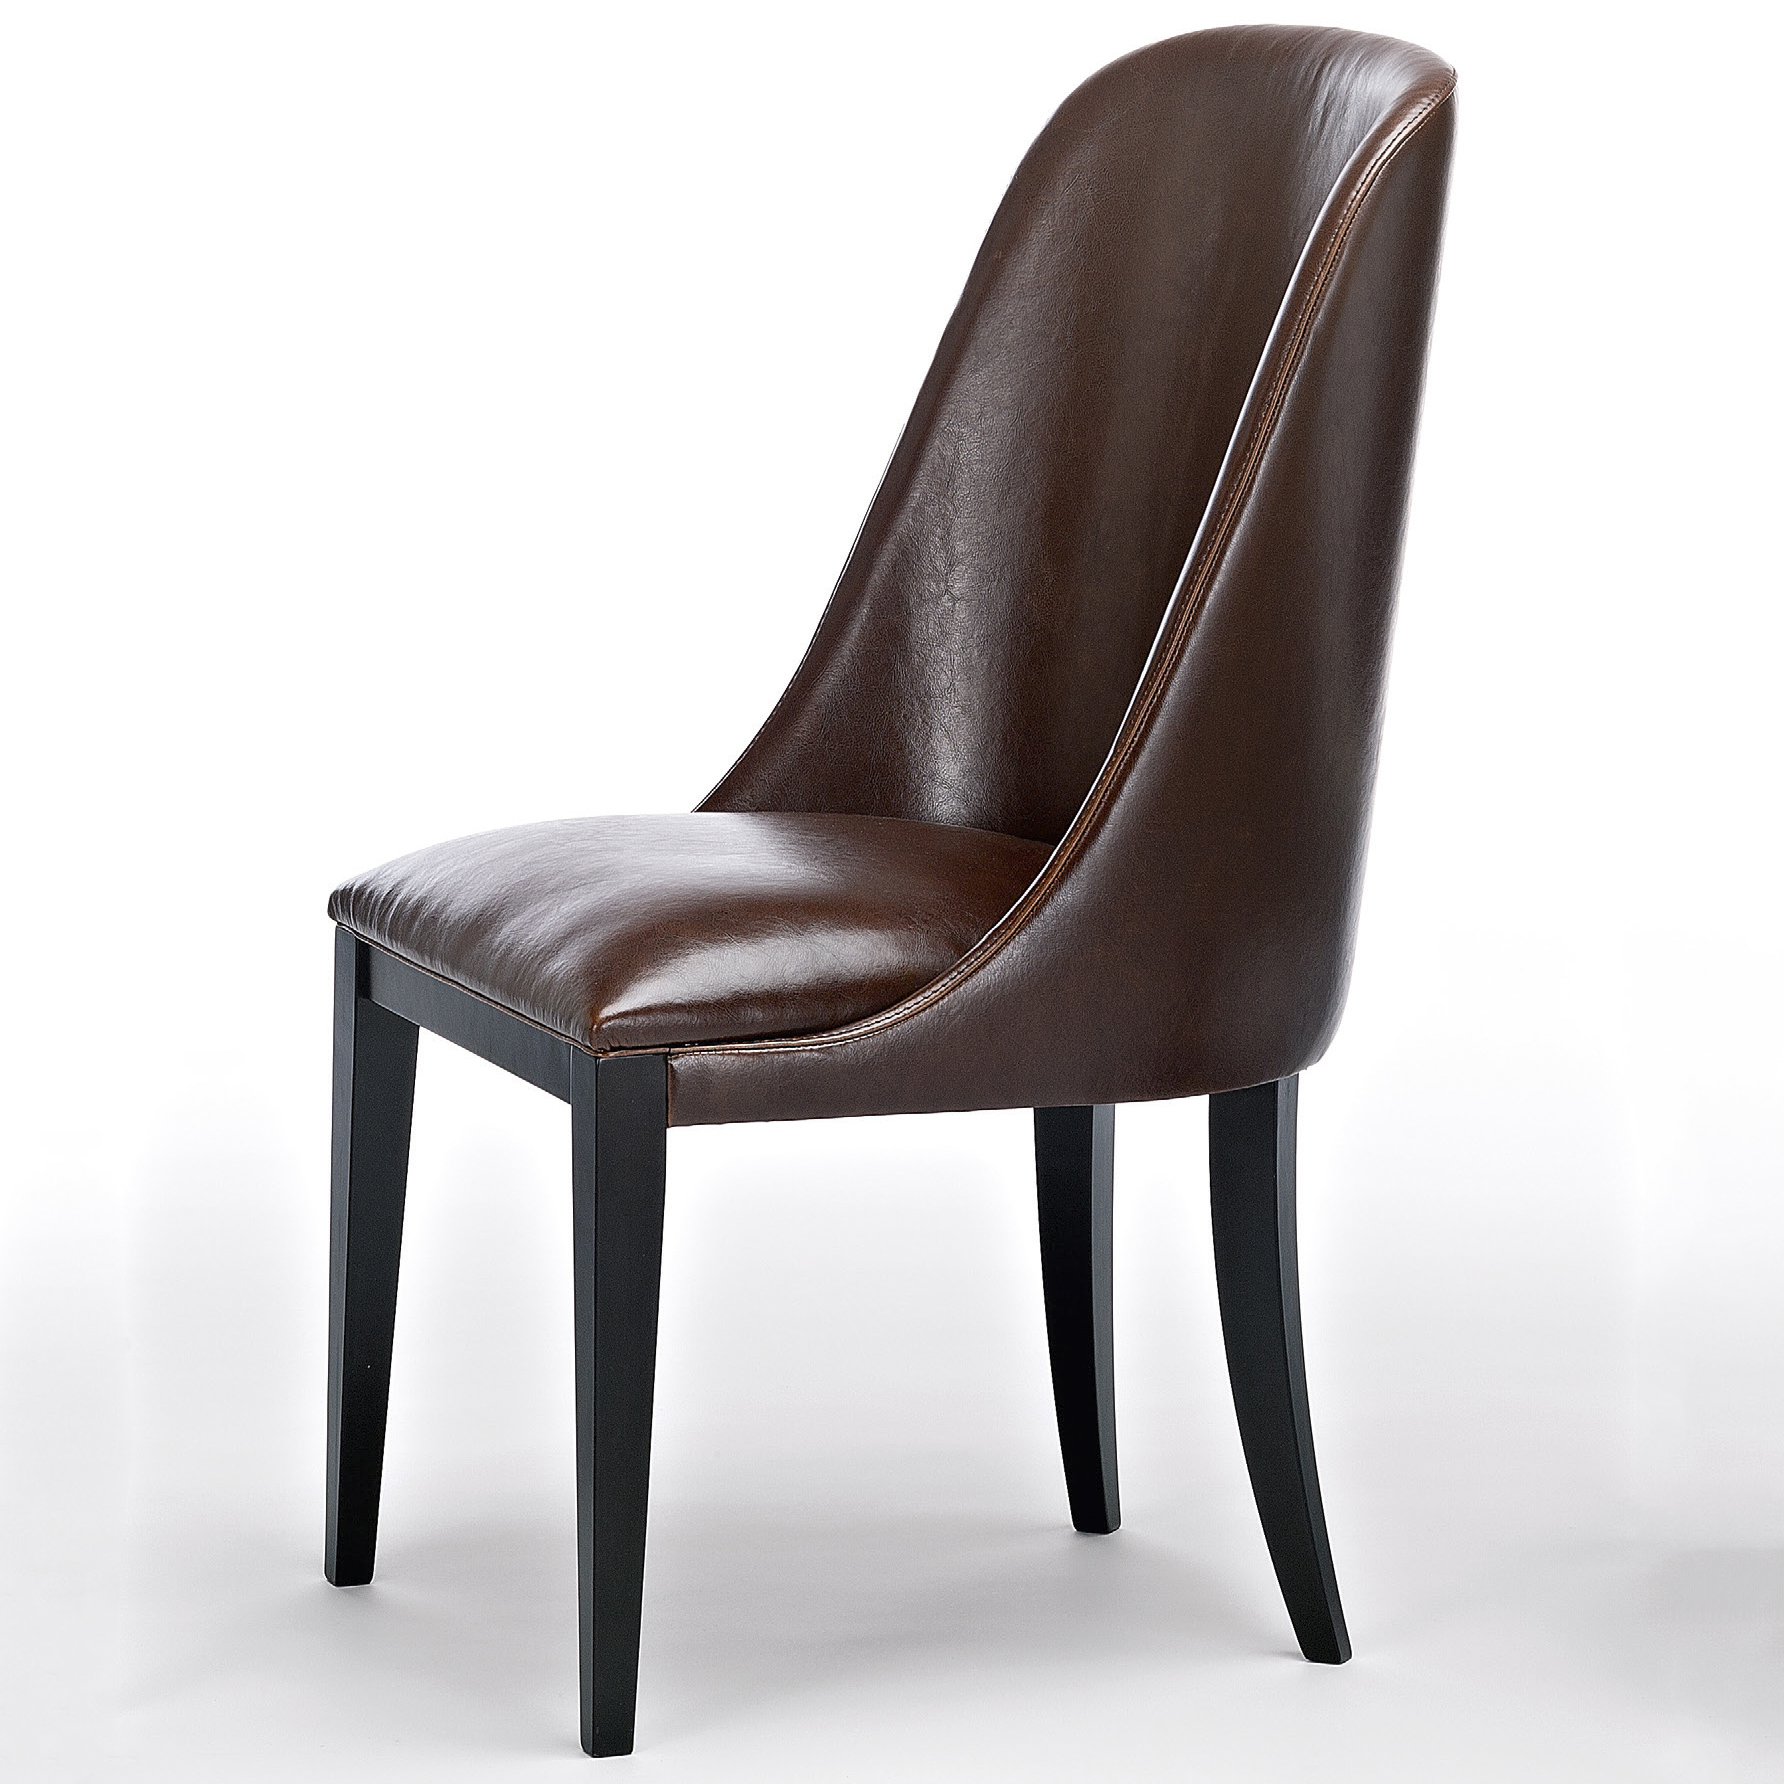 Black Leather Dining Chairs Flamingo Dark Brown Leather Dining Chairs Robson Furniture